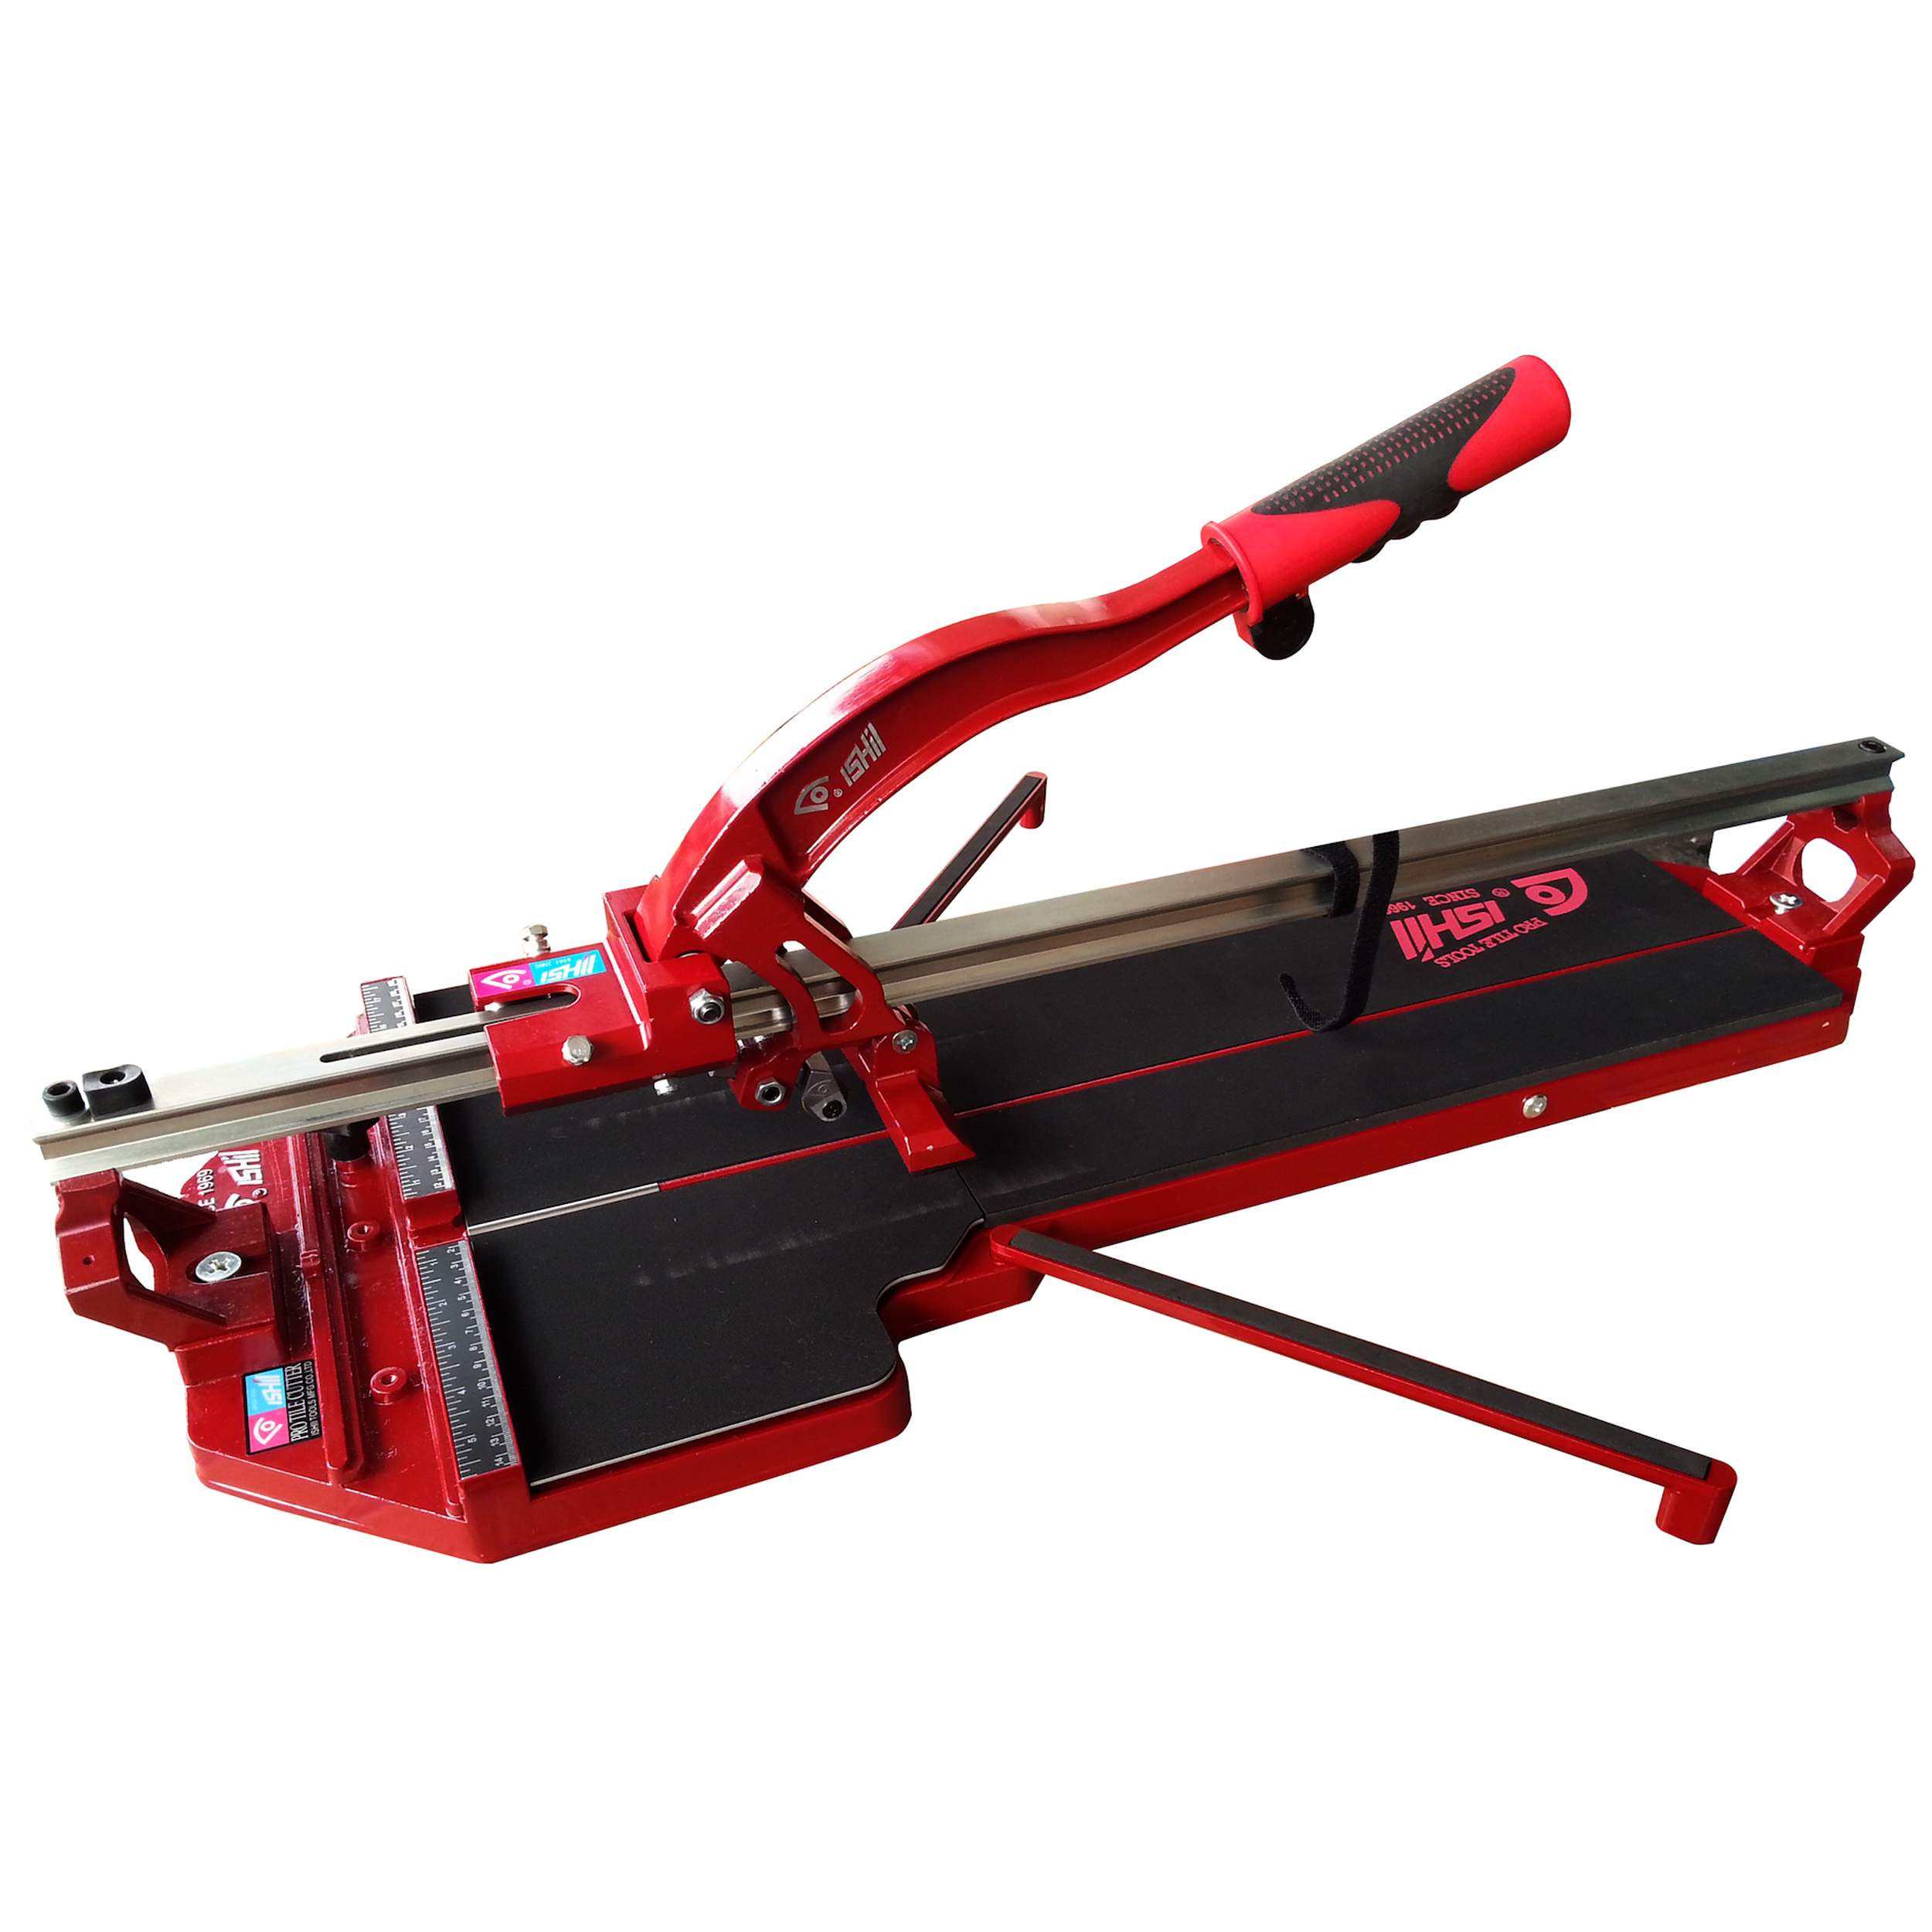 ishii ah870s manual tile snap cutter cutting length 850mm weight 15kg